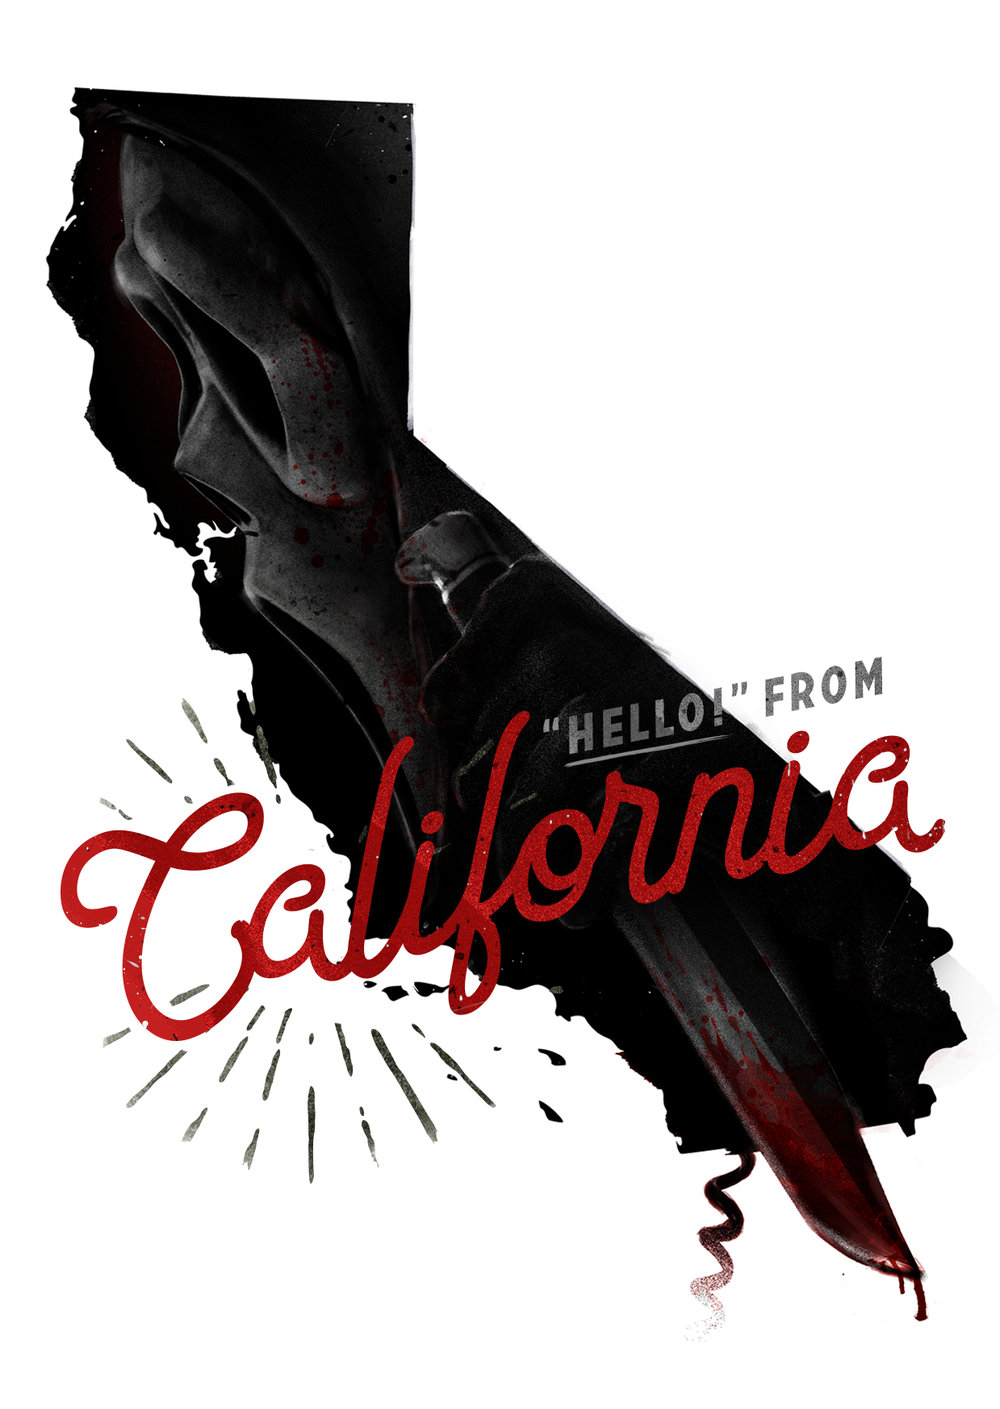 USofHorror-Postcards-California.jpg